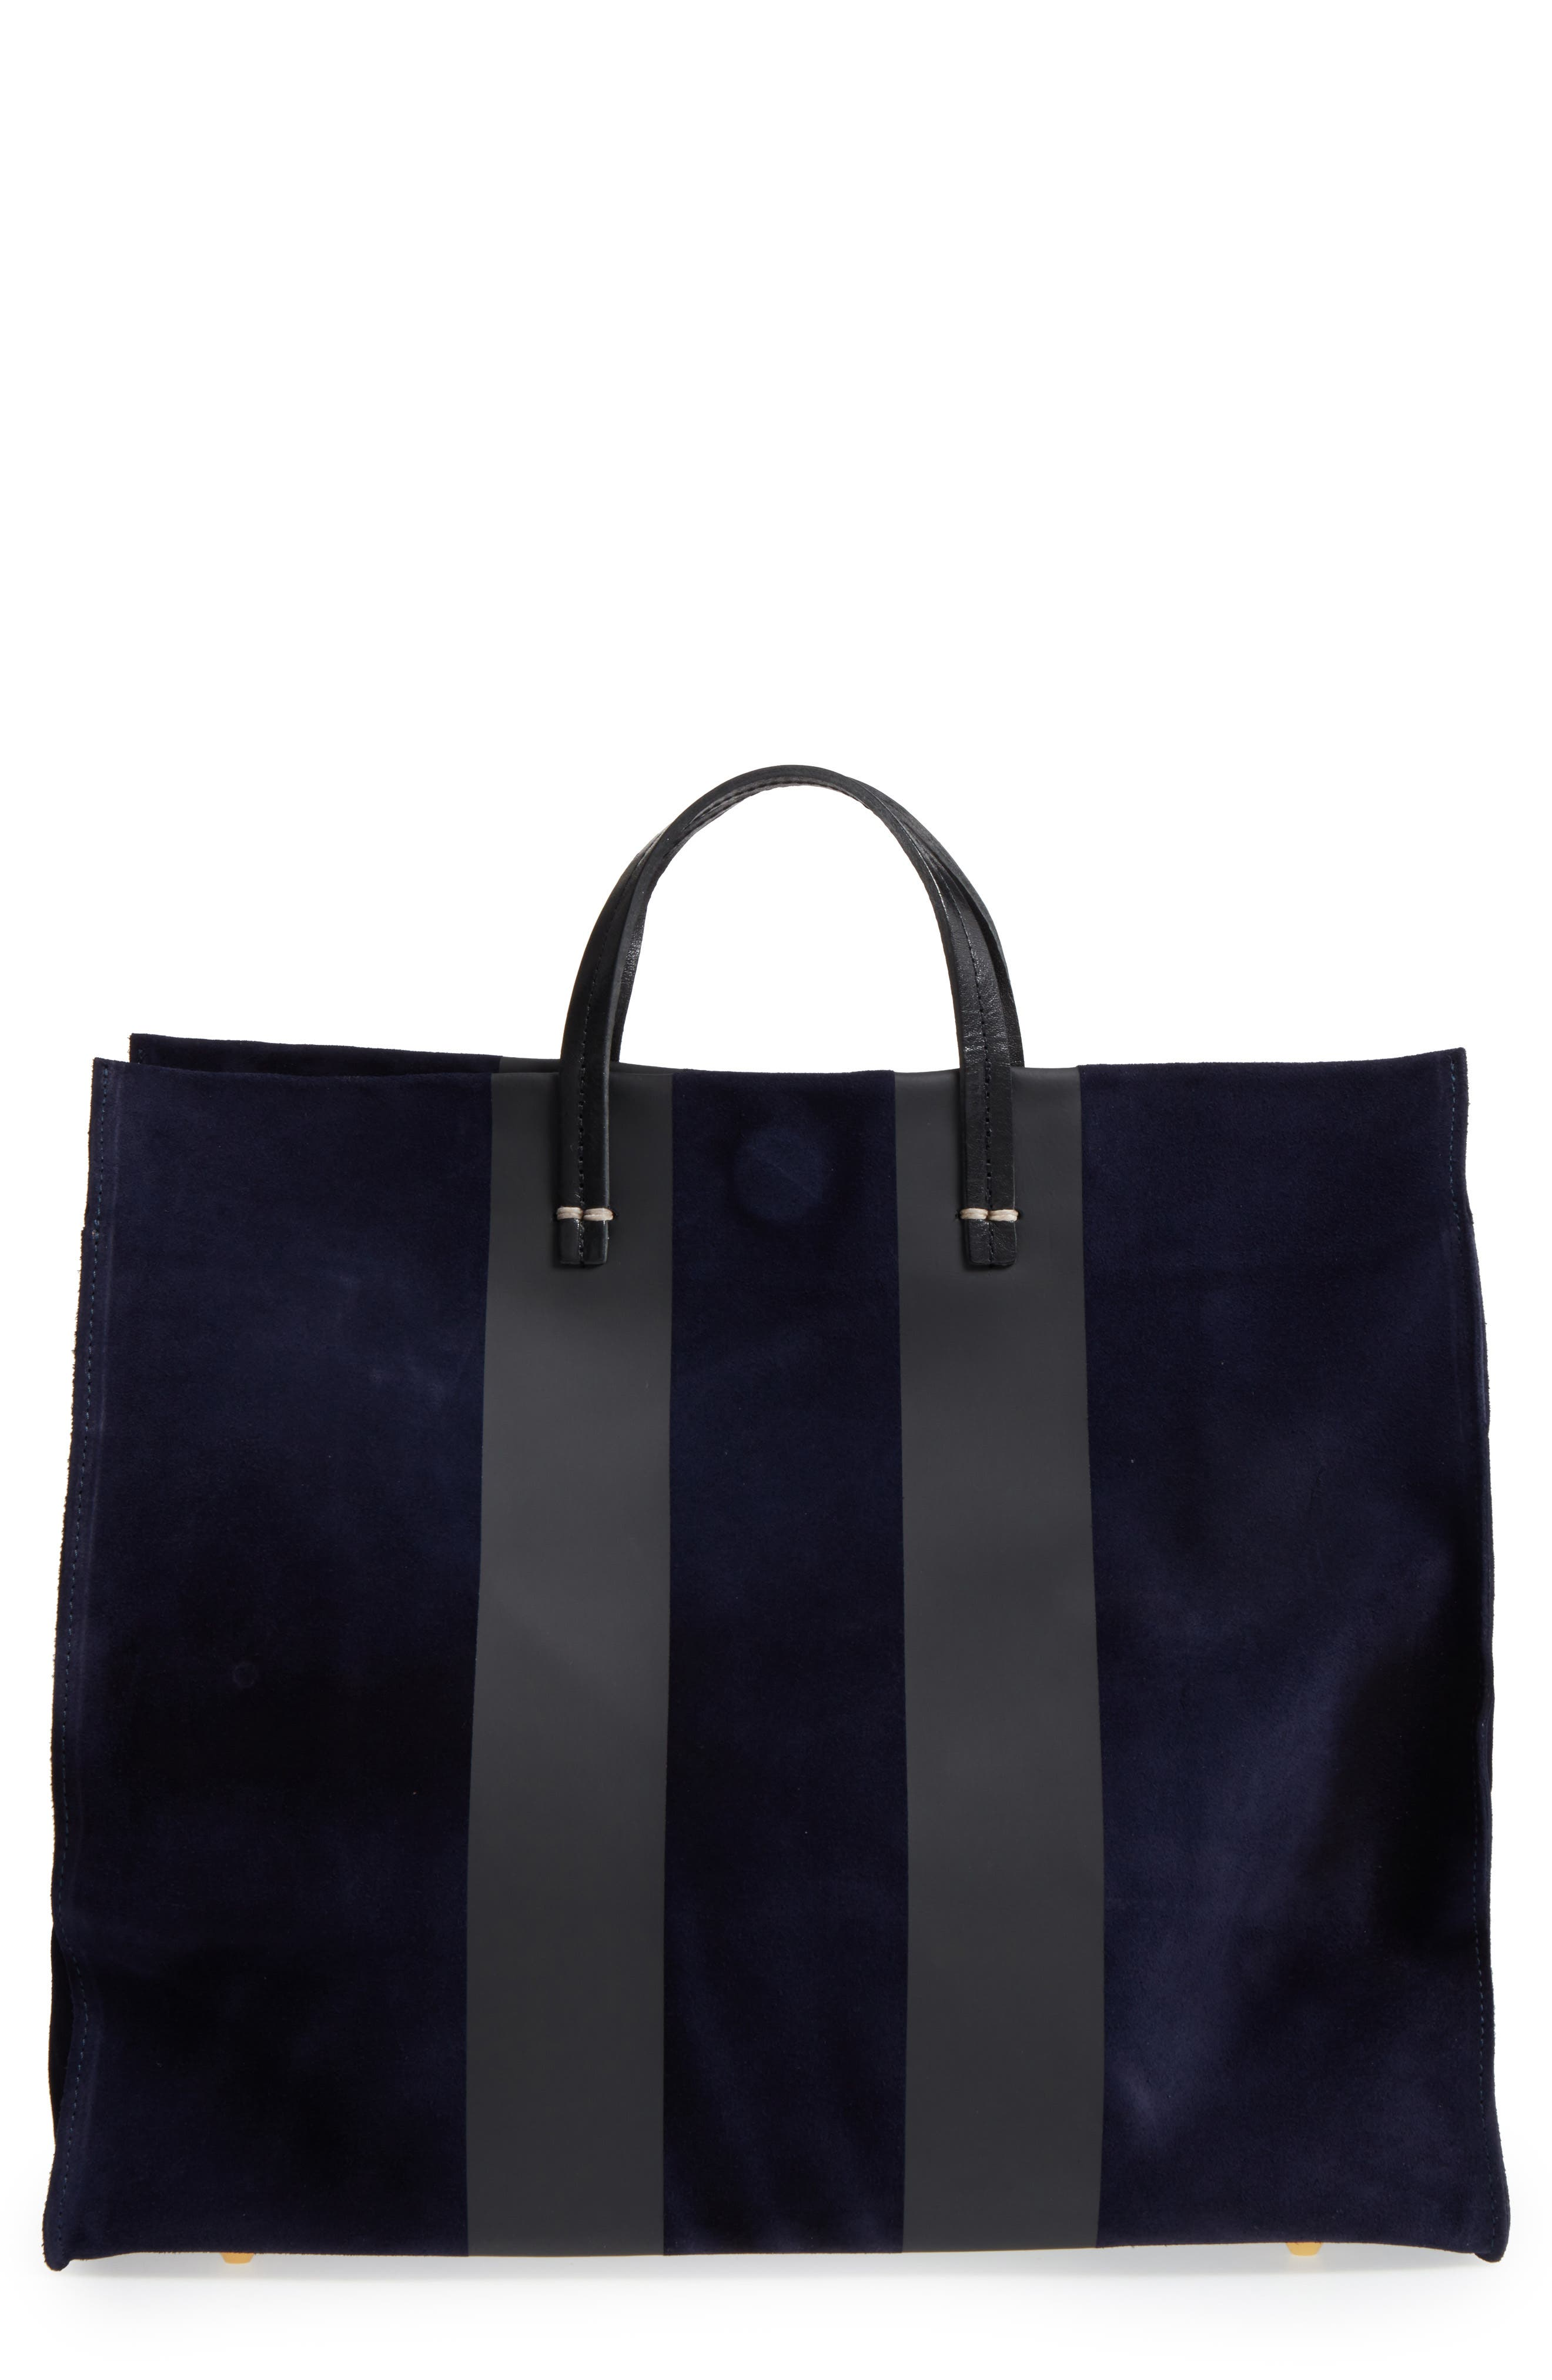 Alternate Image 1 Selected - Clare V. Simple Leather Tote